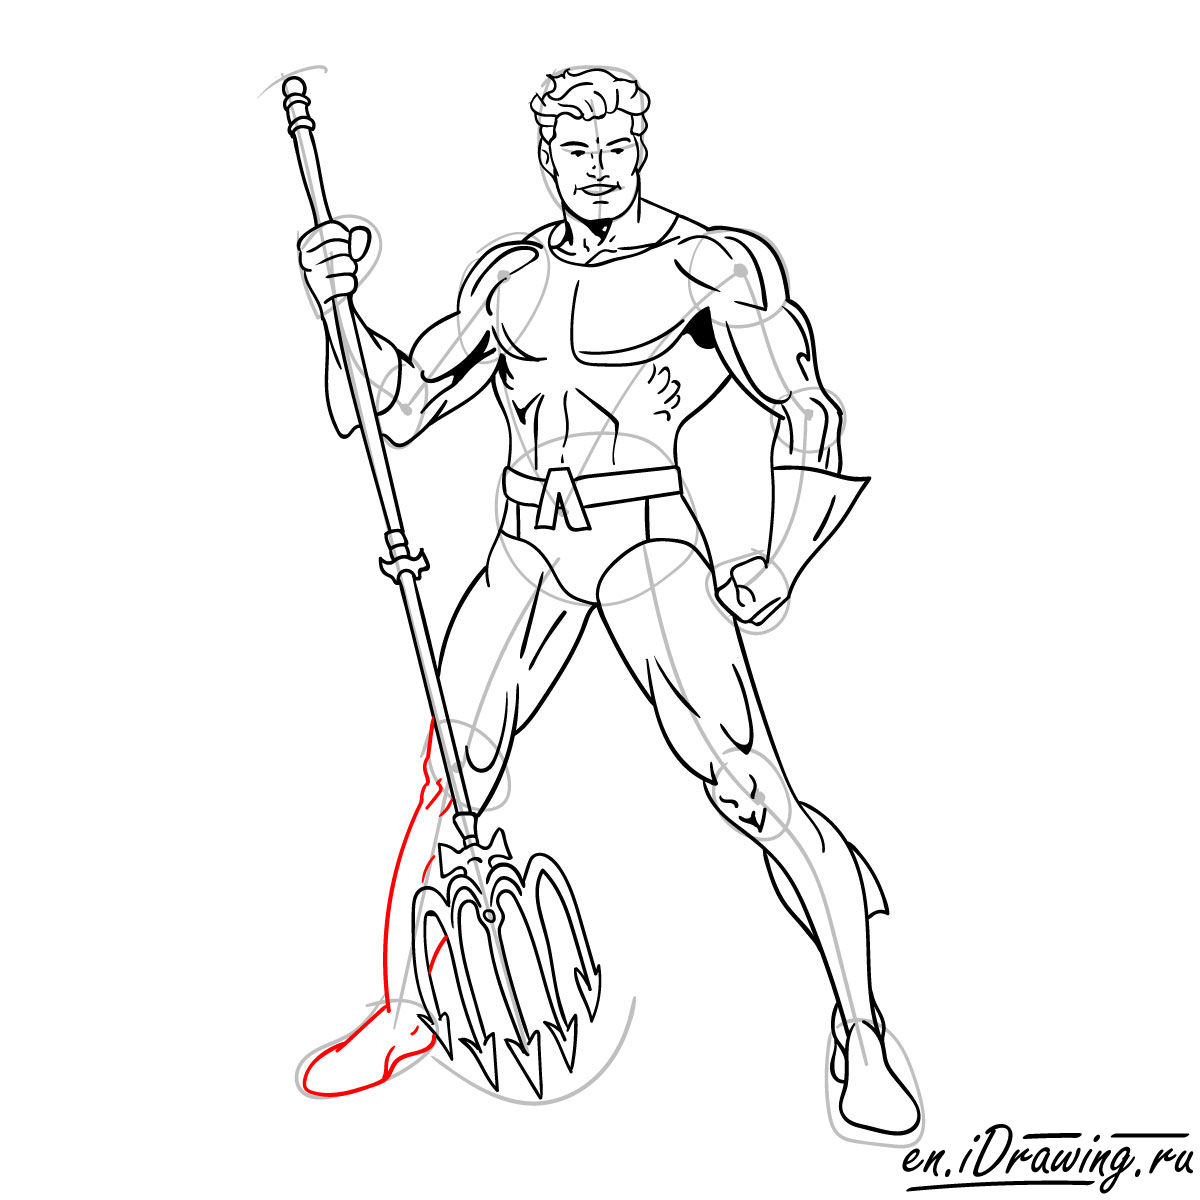 How to draw Aquaman from cartoons and comic books - step 17